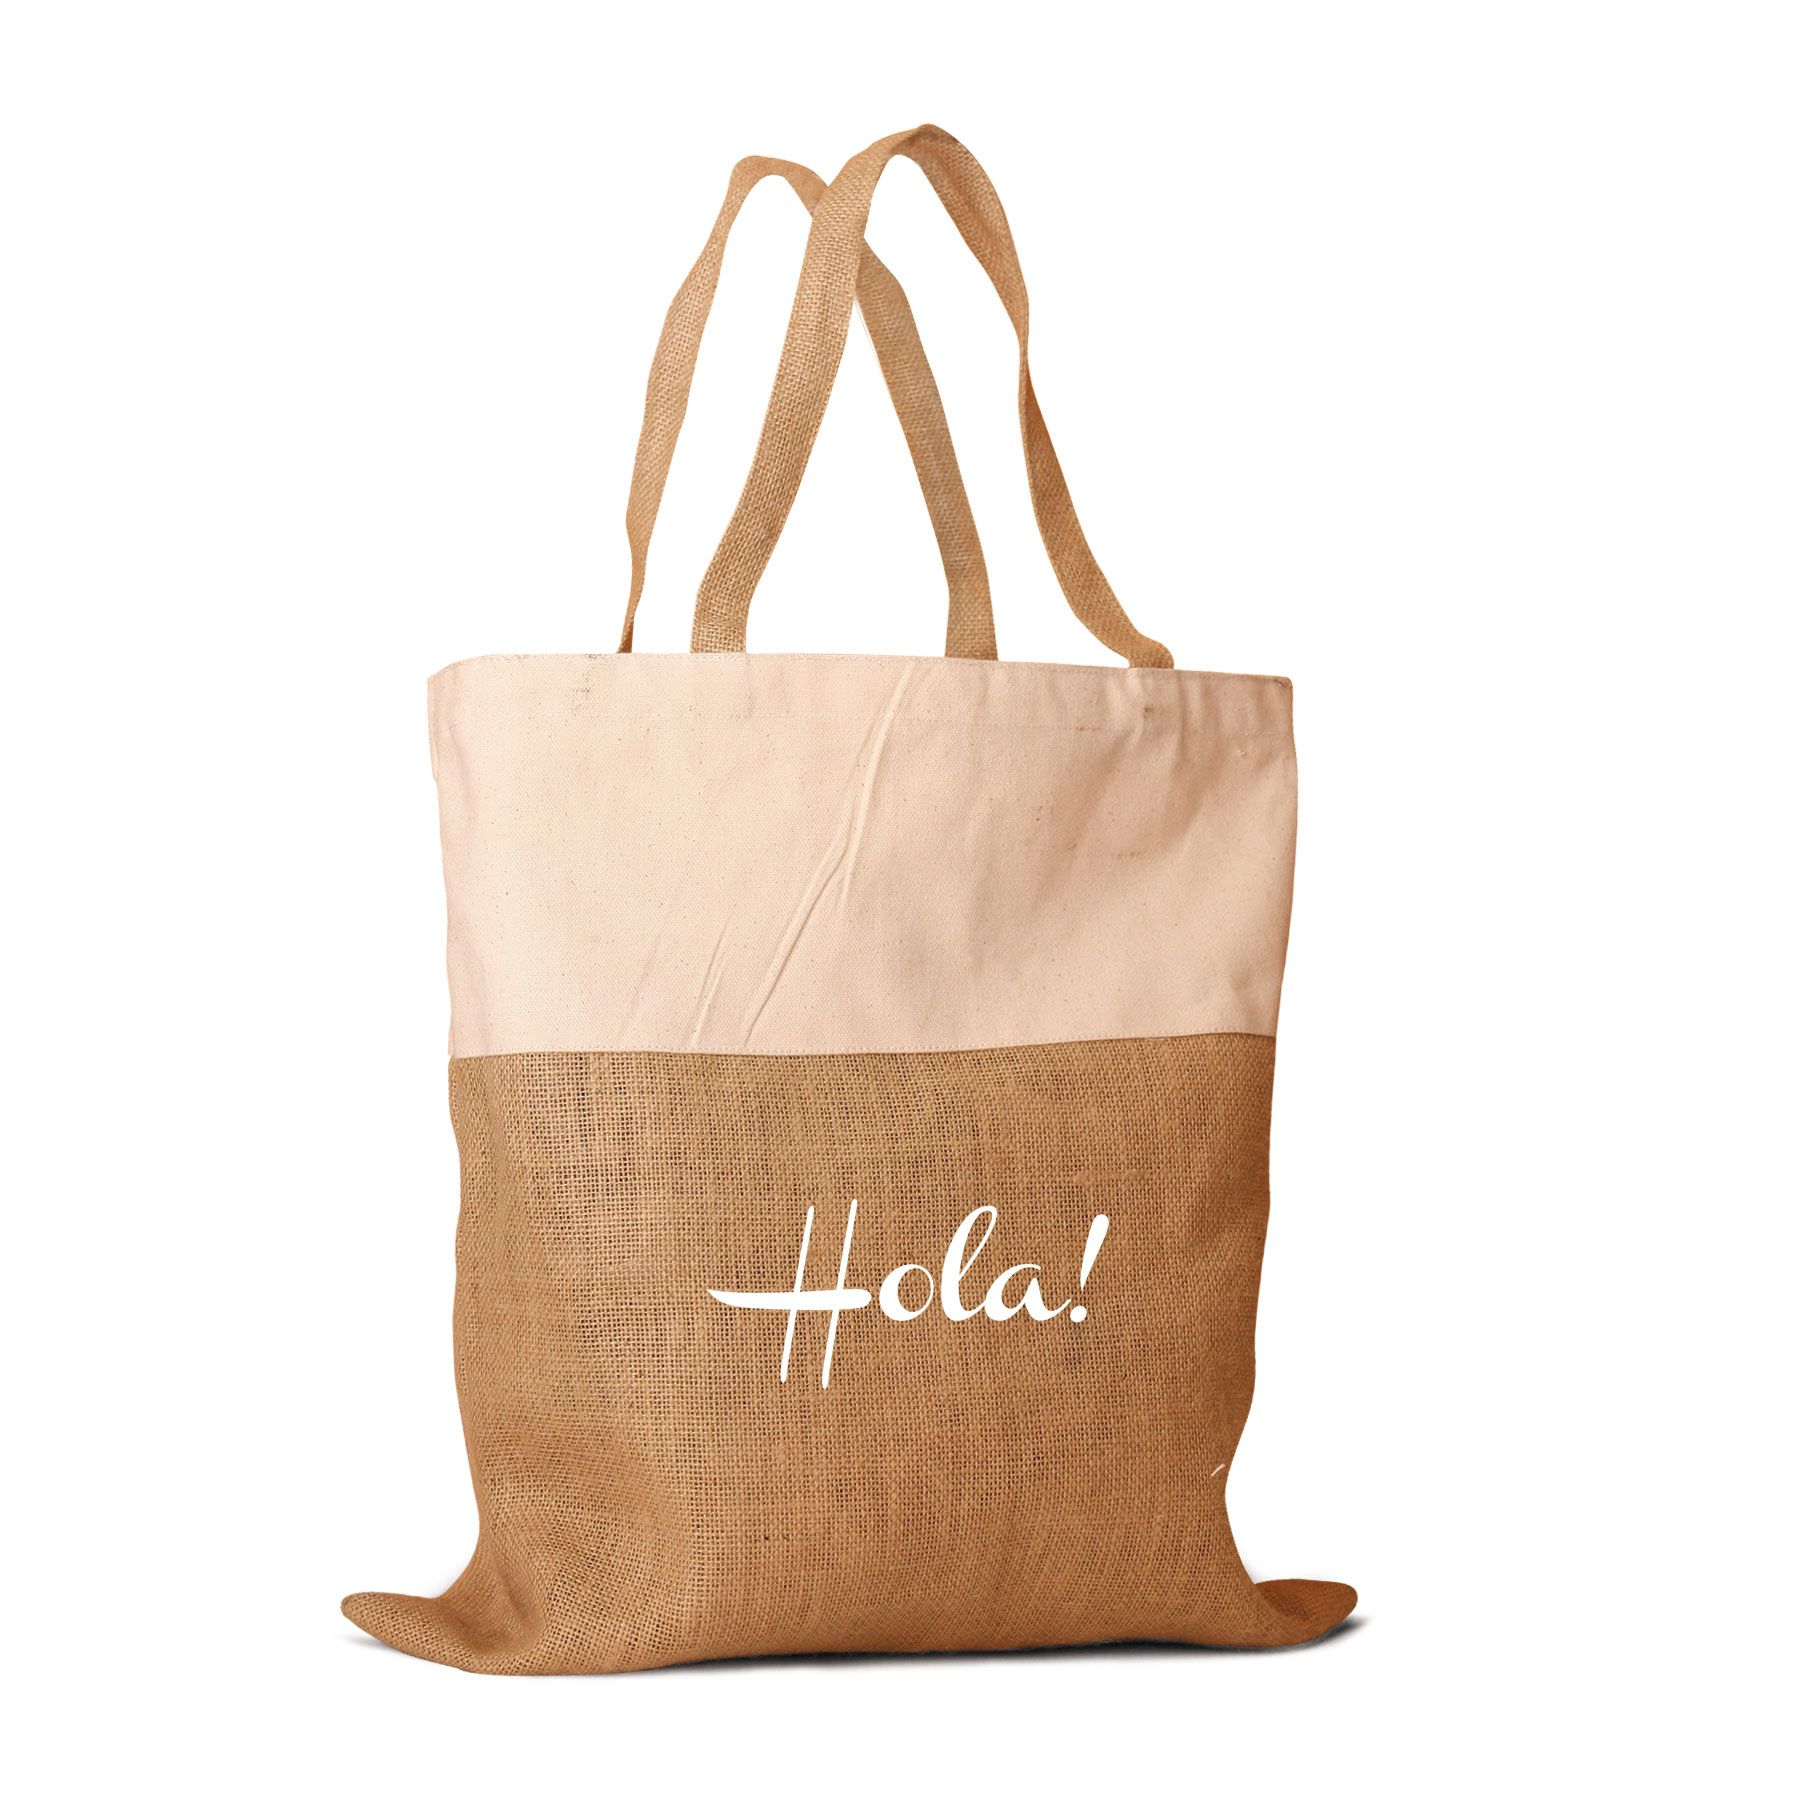 Beautiful Two Tone Jute And Cotton Combination Tote Bag With Hola Print For Wedding Guest Gift Bags All Natural In Color Webbed Handles